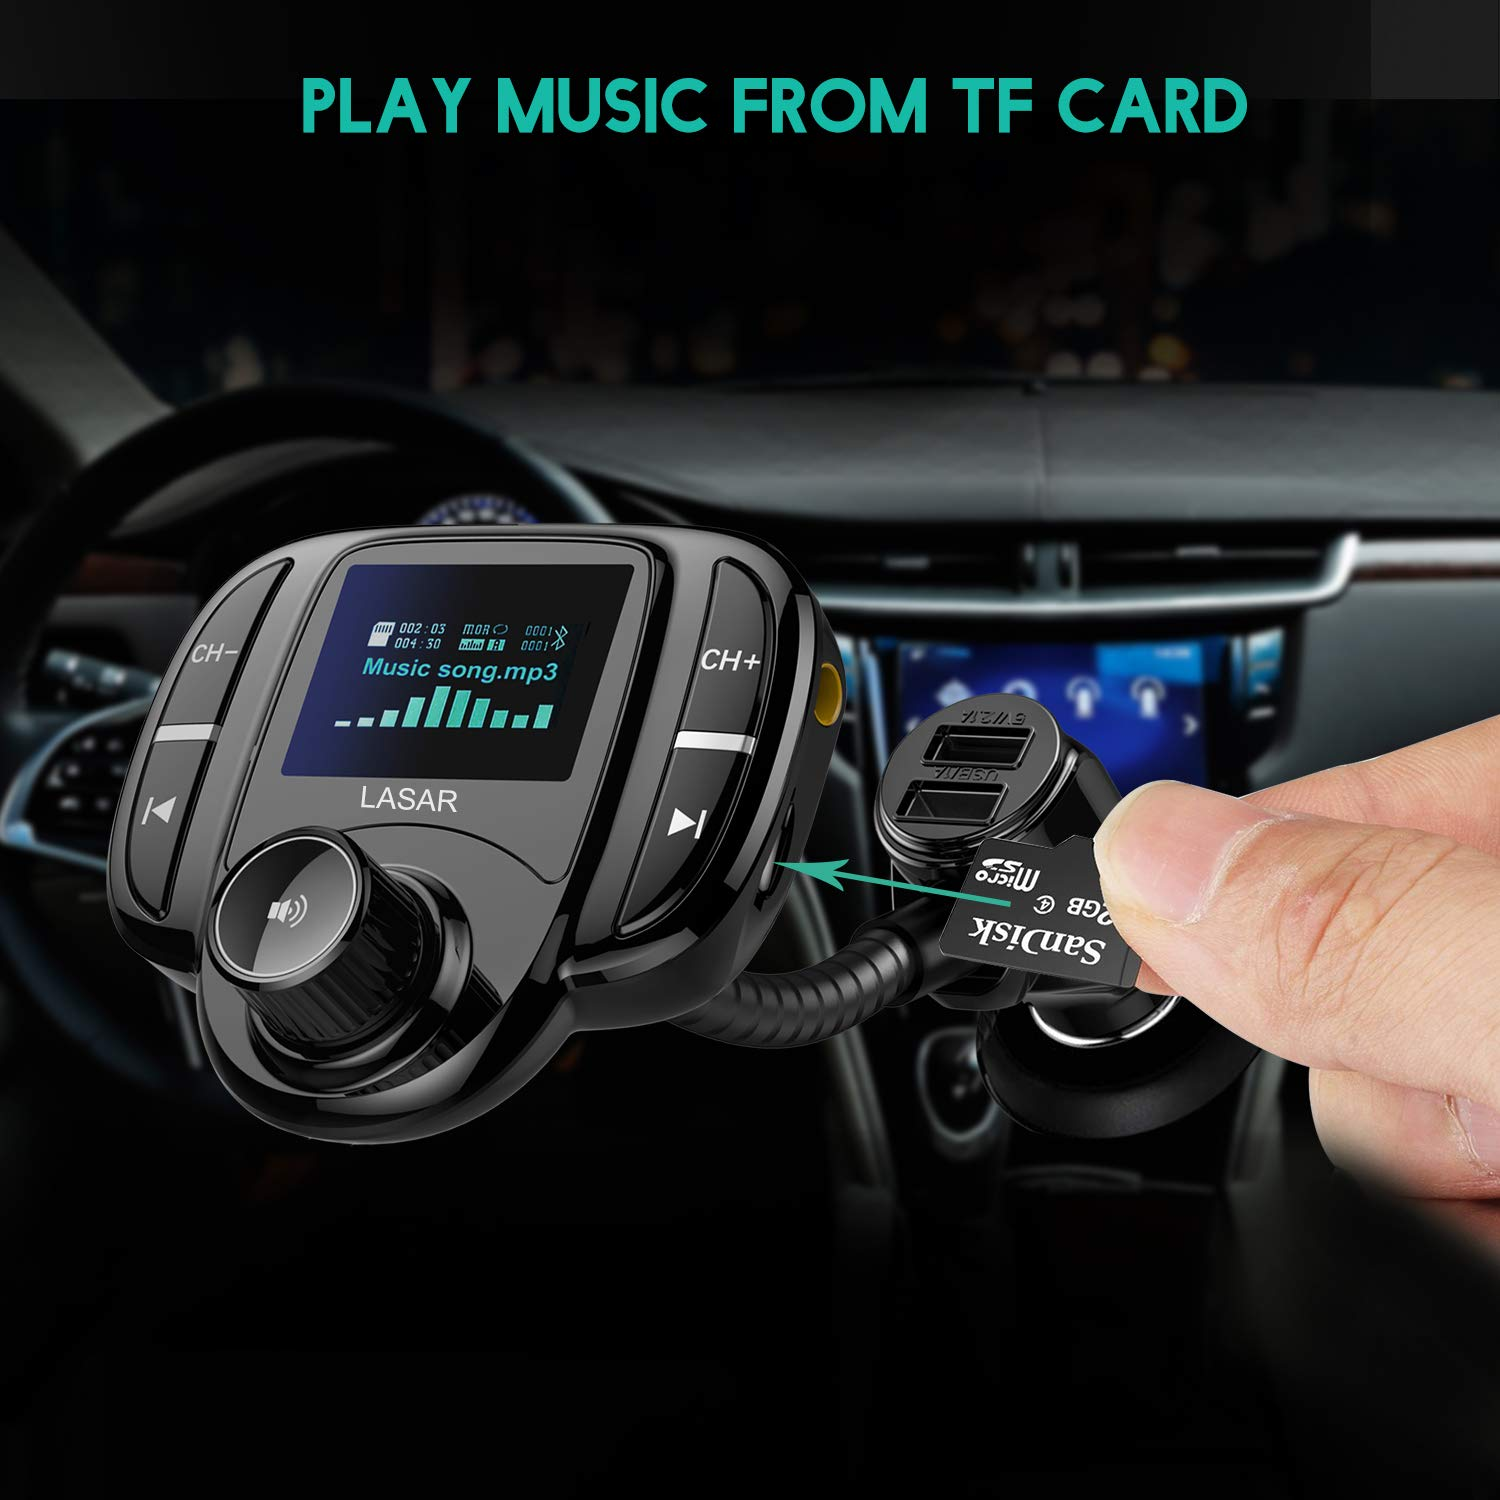 """LASAR Bluetooth FM Transmitter,Wireless Radio Adapter Hands-Free Calling Car Kit QC3.0 and Smart Dual USB Port W 1.7"""" Display, Support USB Drive,AUX Input/Output, TF Card MP3 Player by LASAR (Image #3)"""